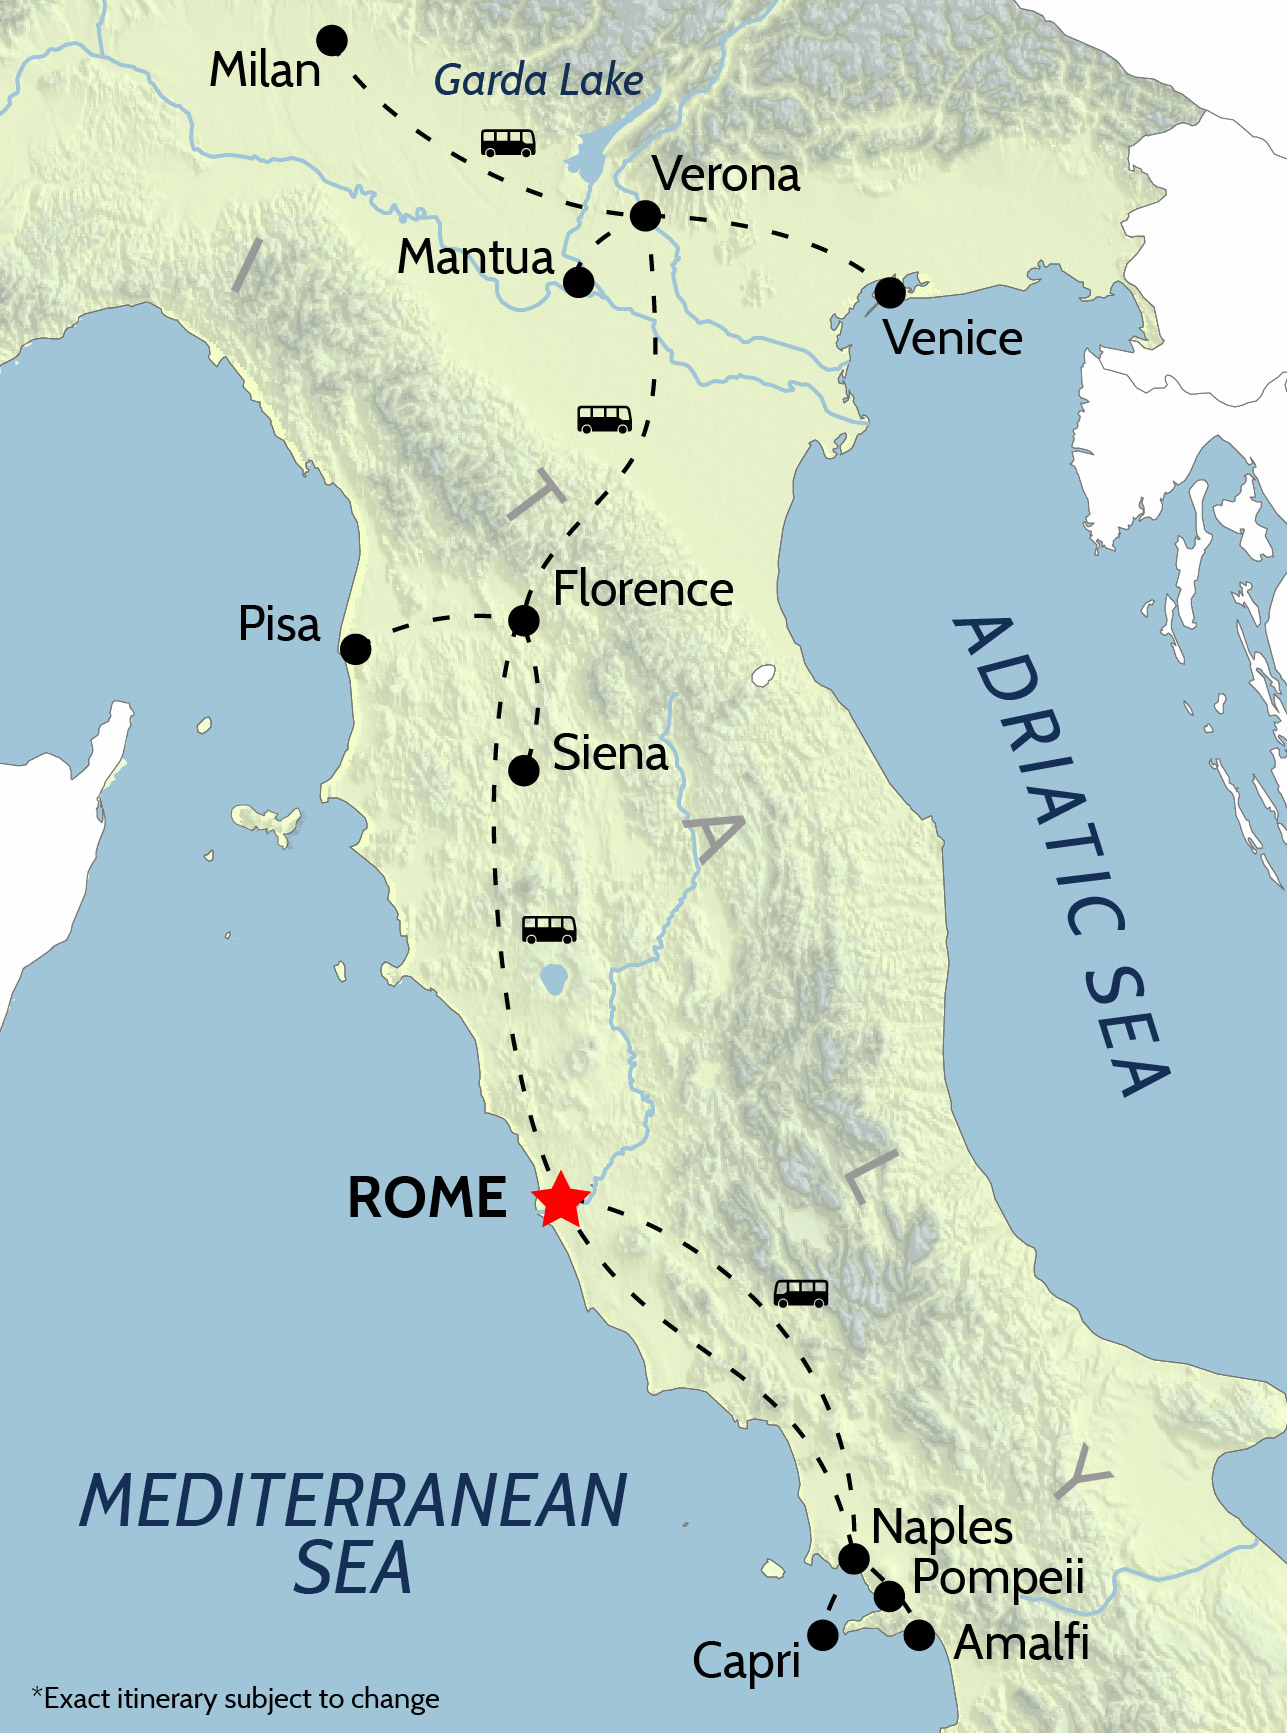 The tour map for Wheel & Anchor's tour of Italy